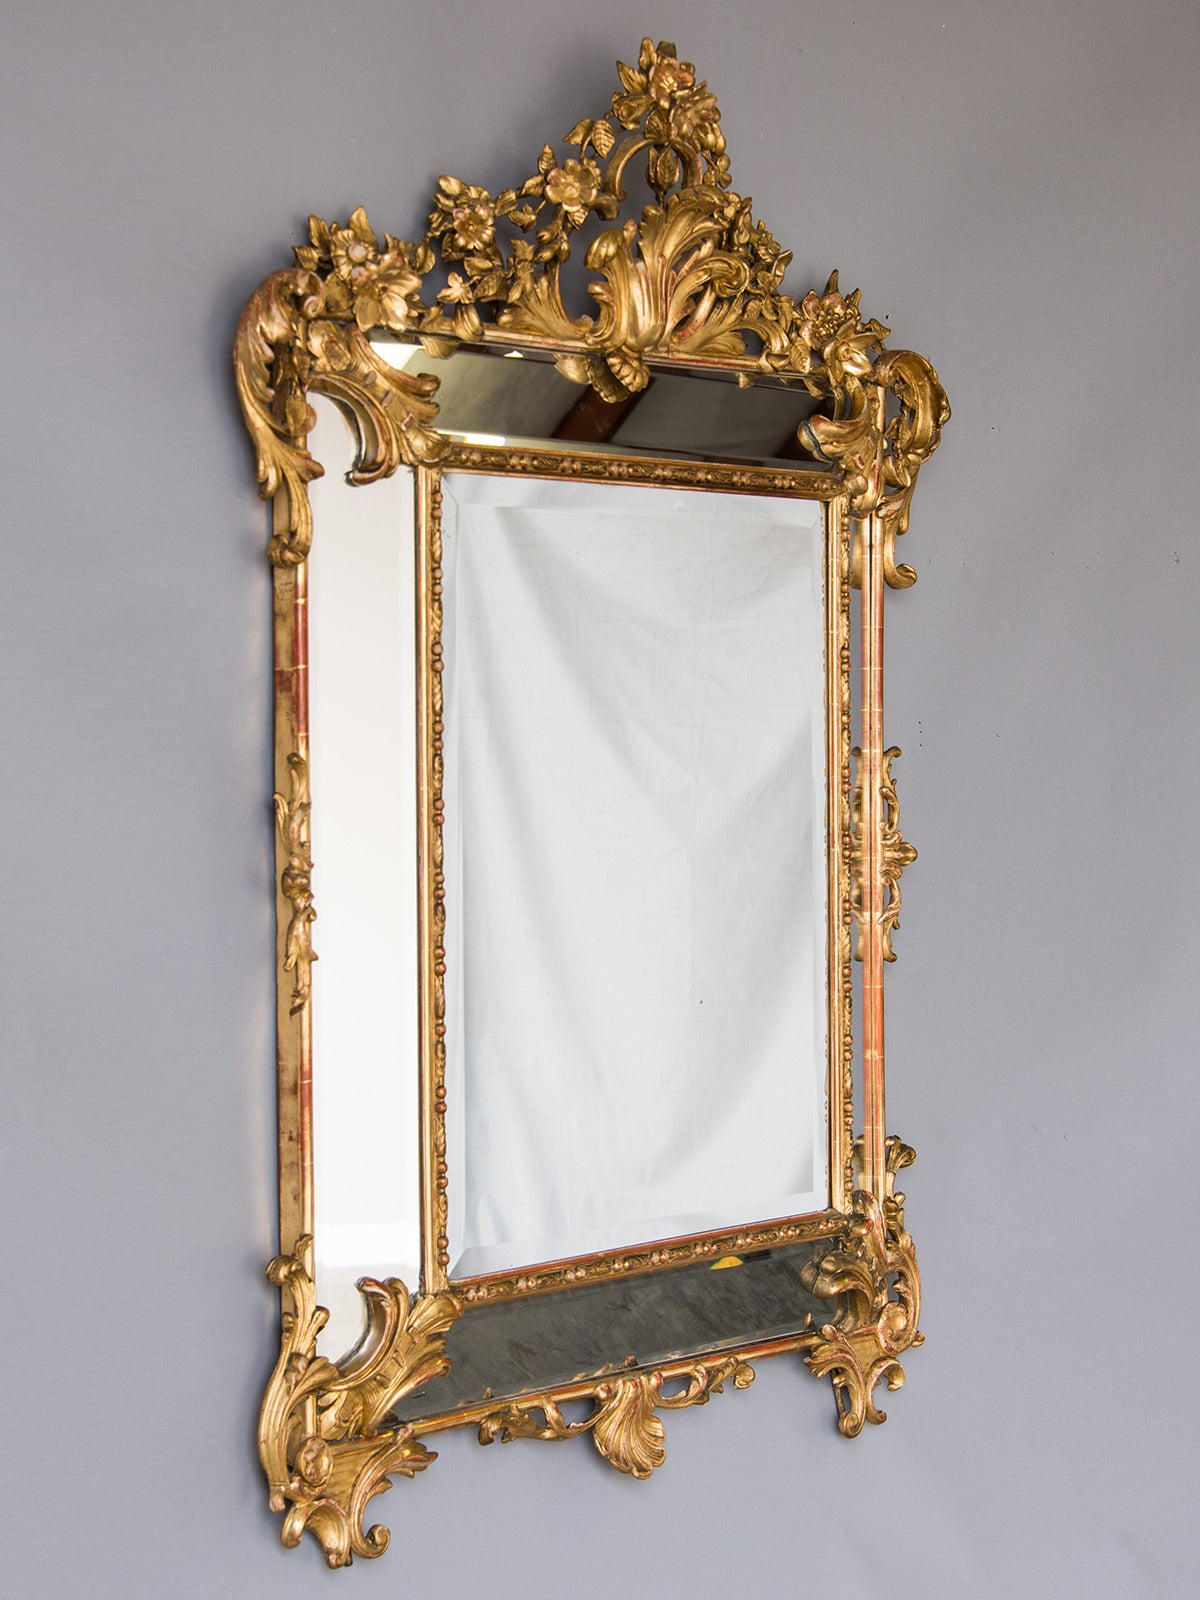 Bold Antique French Régence Style Pareclose Gold Leaf Mirror, circa 1890 5